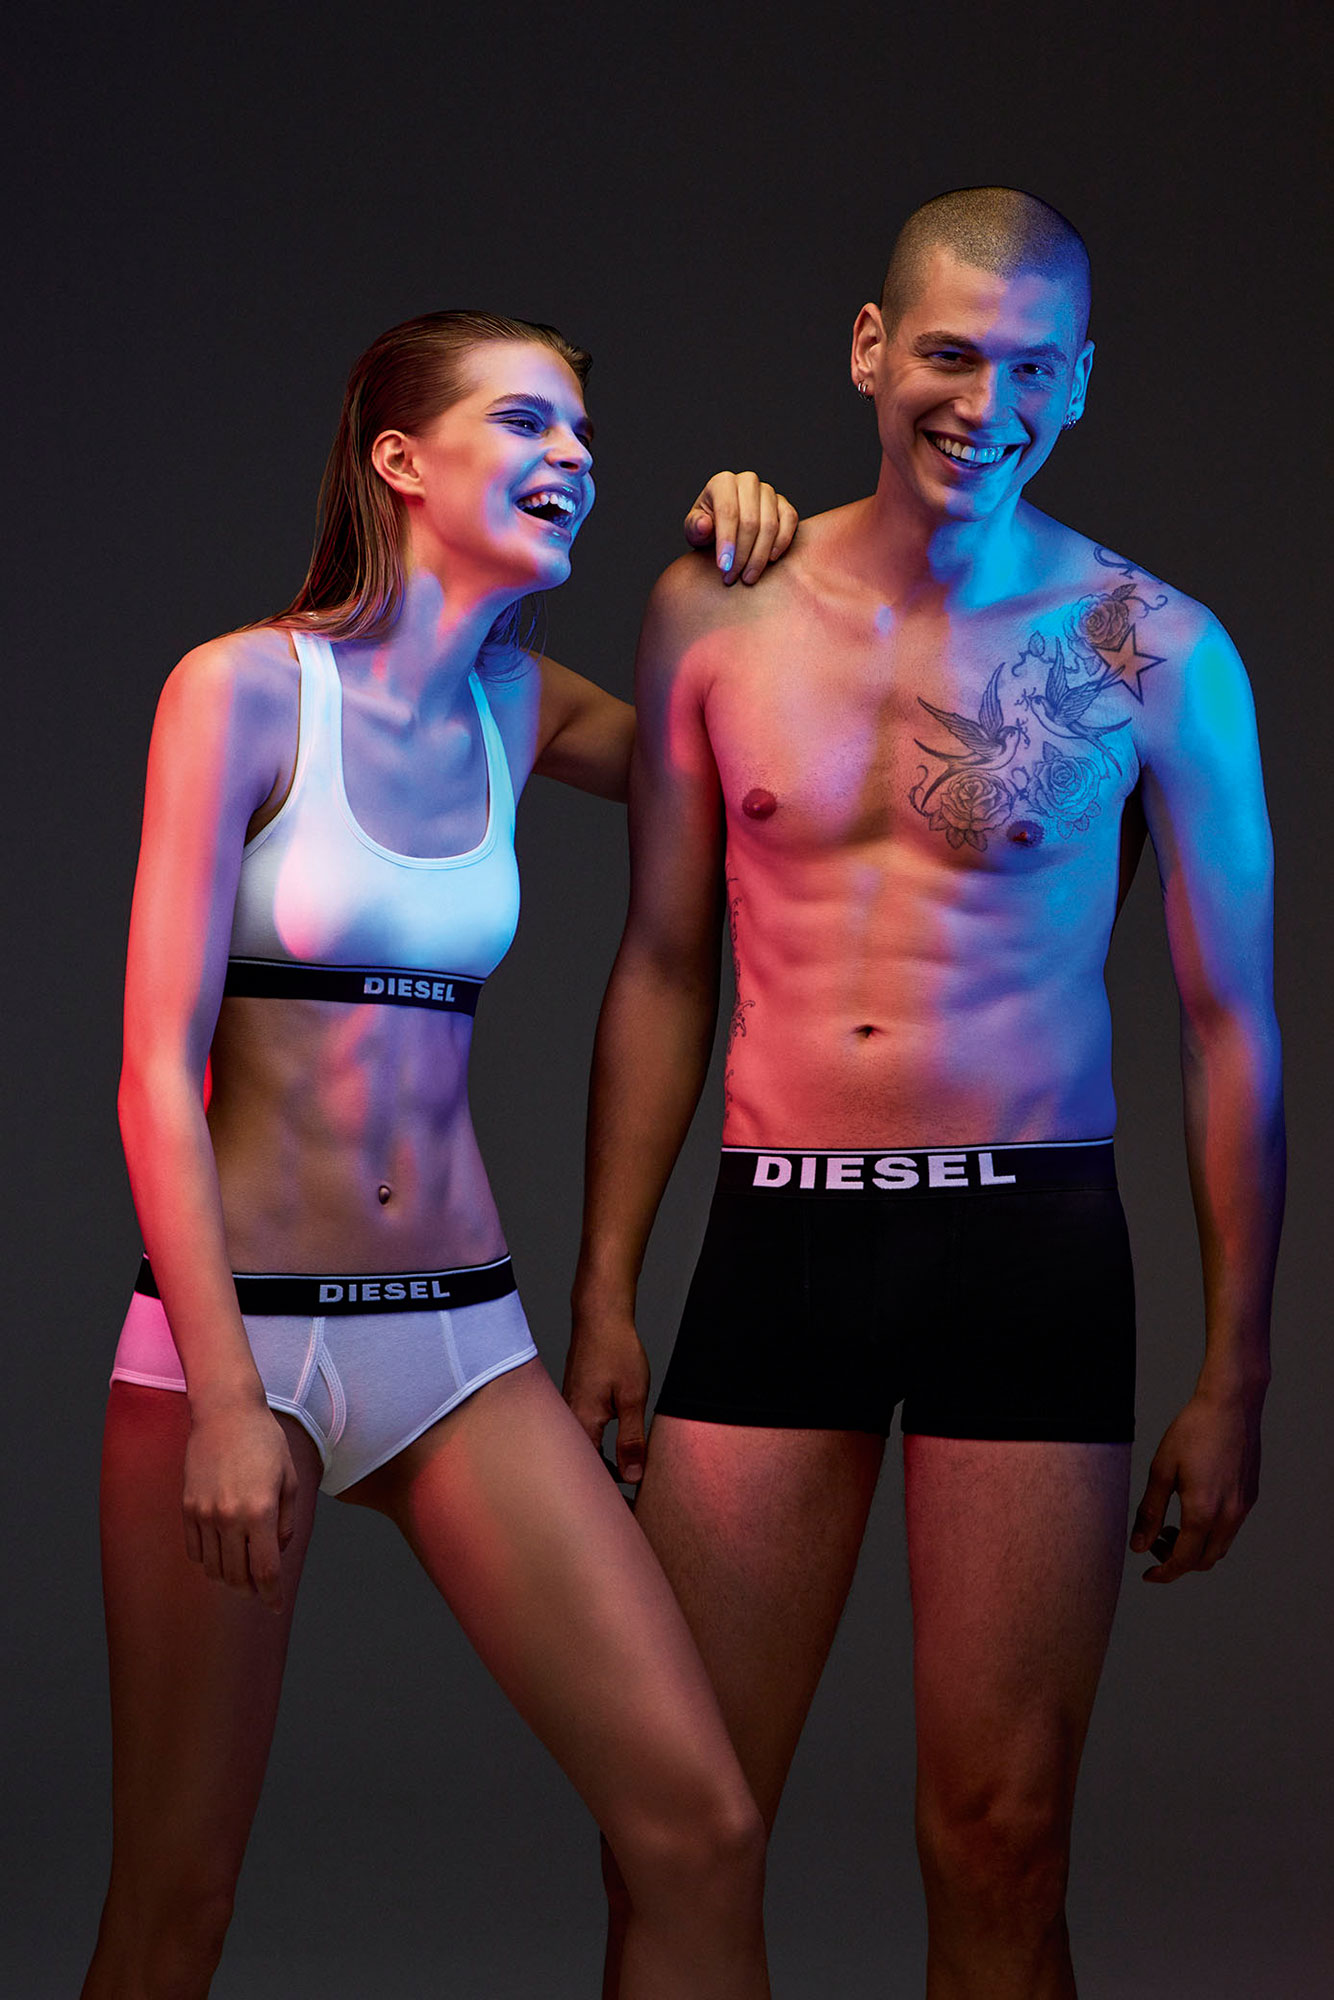 Diesel Underwear 2018 | Carin Backoff | Diesel | Numerique Retouch Photo Retouching Studio